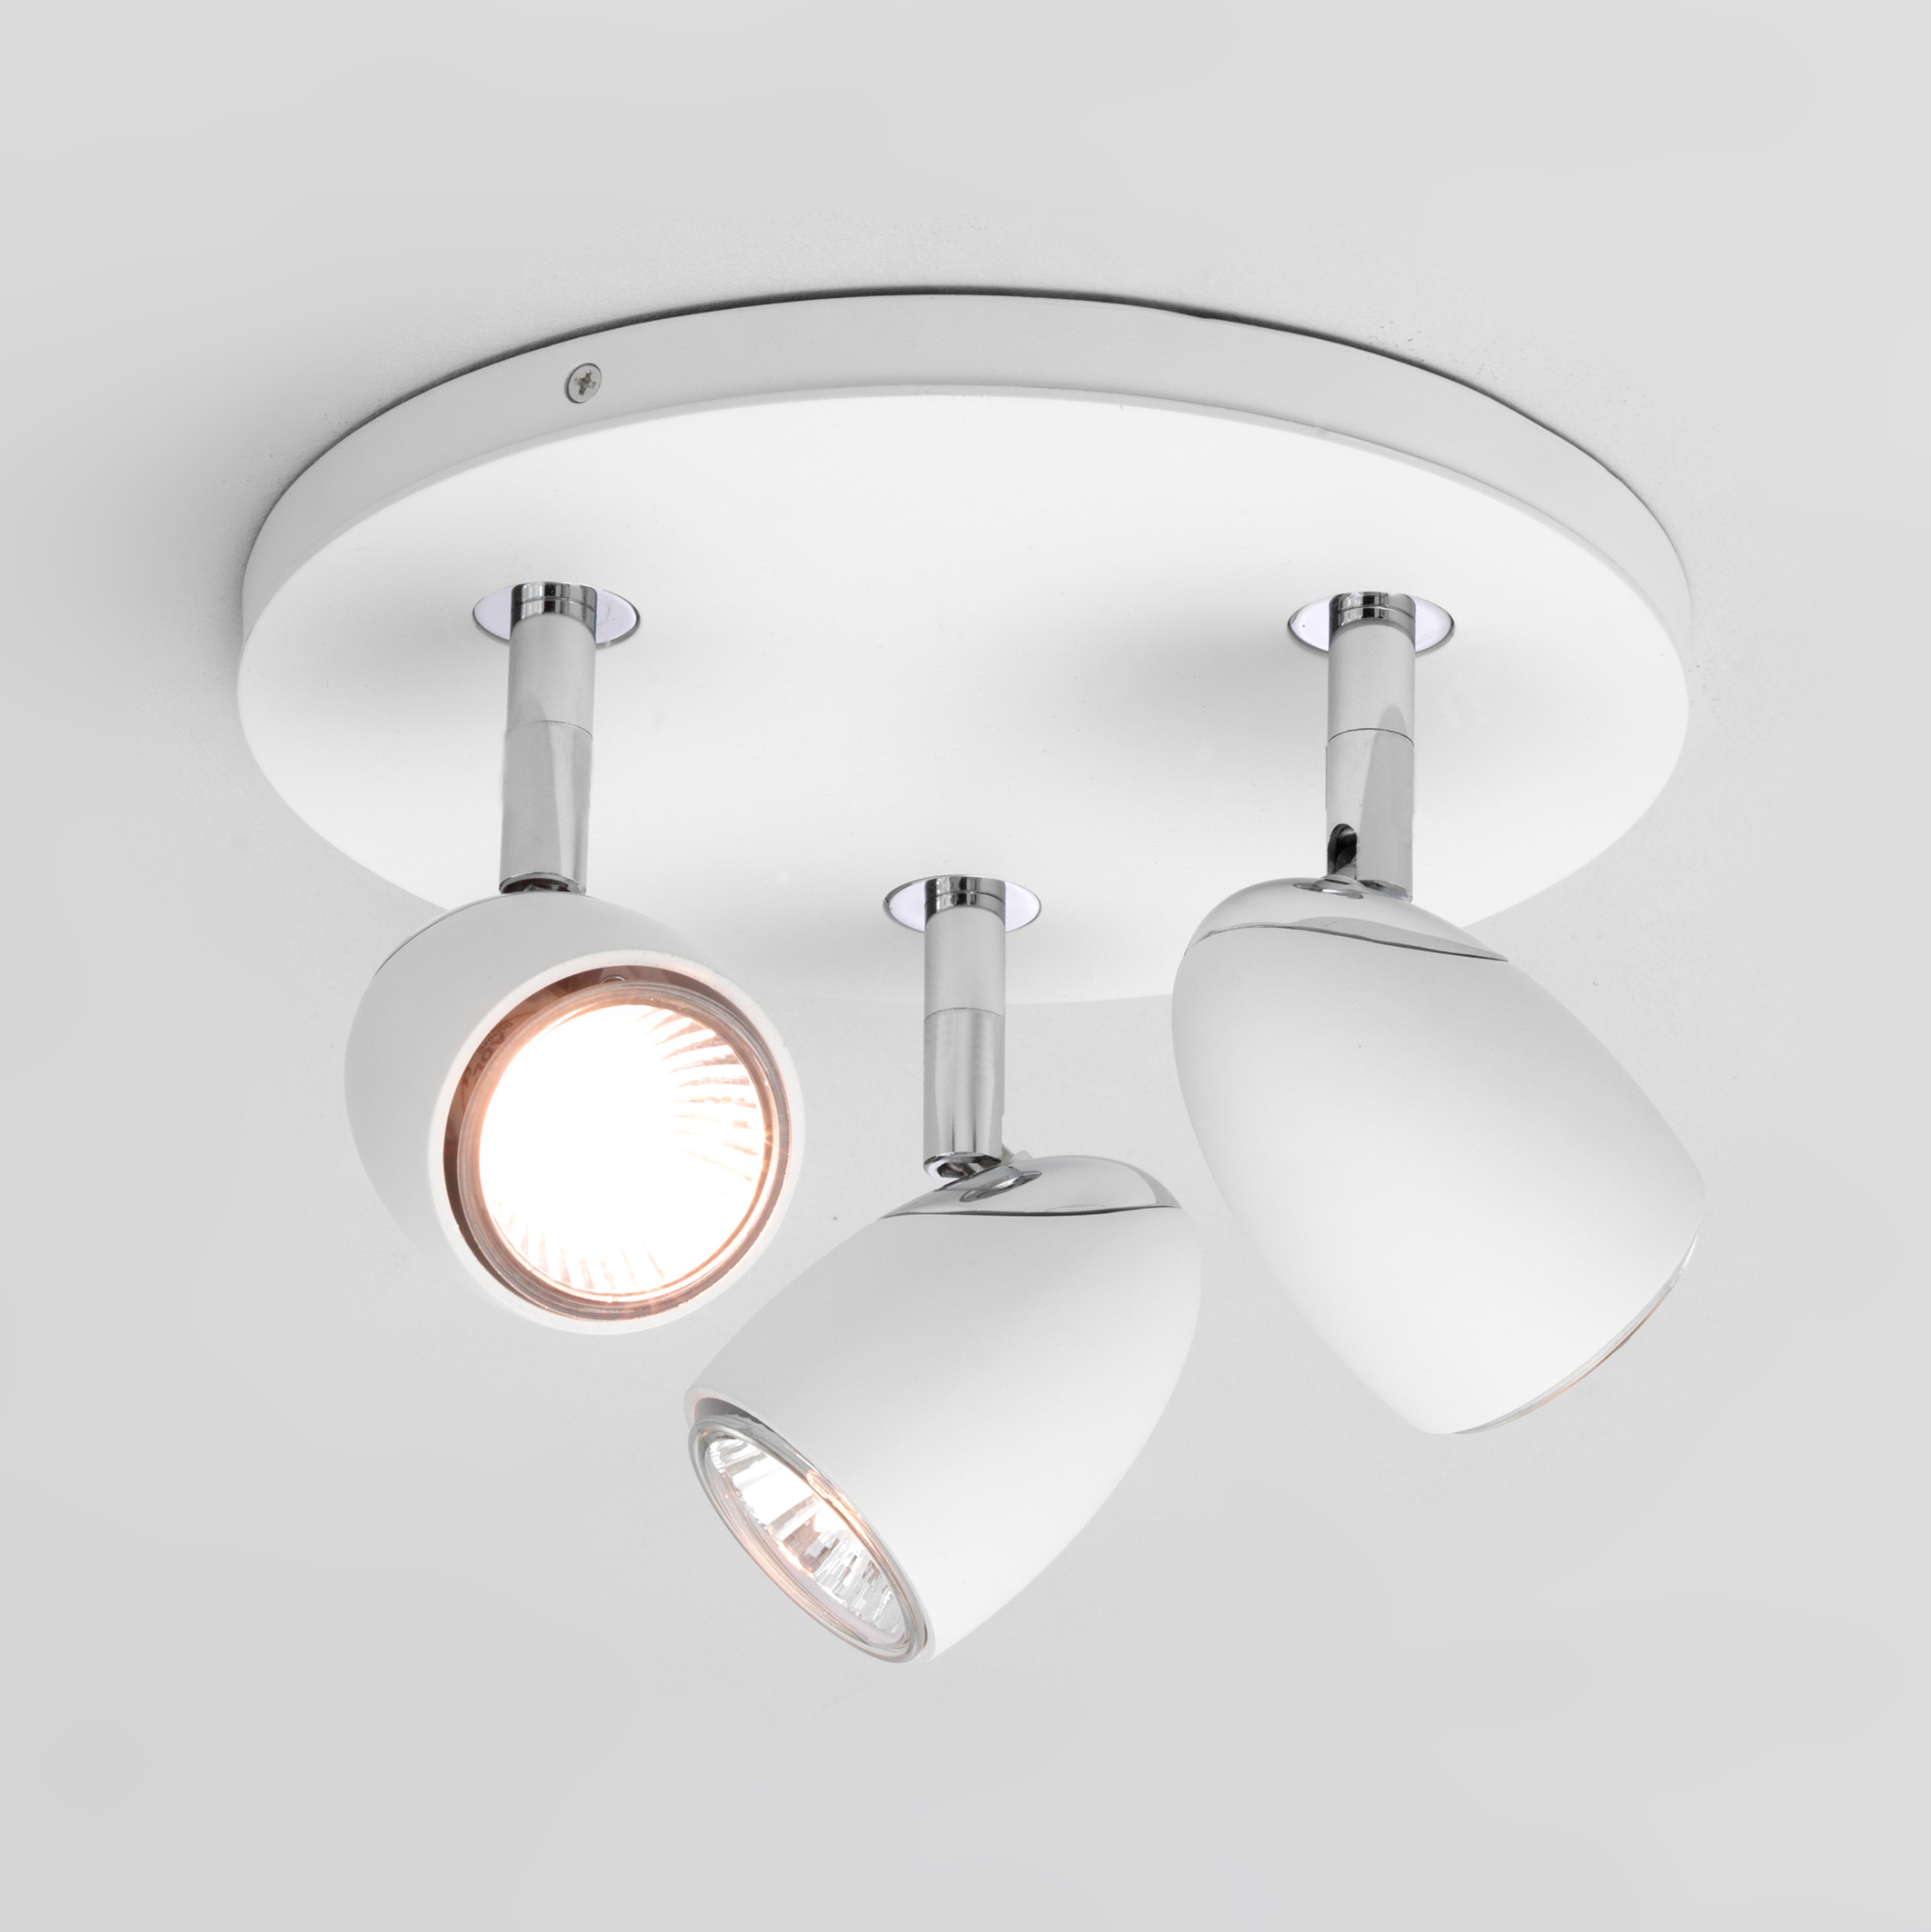 Pendant Light Suitable For Bathroom : Astro ovale triple round bathroom adjustable spotlight